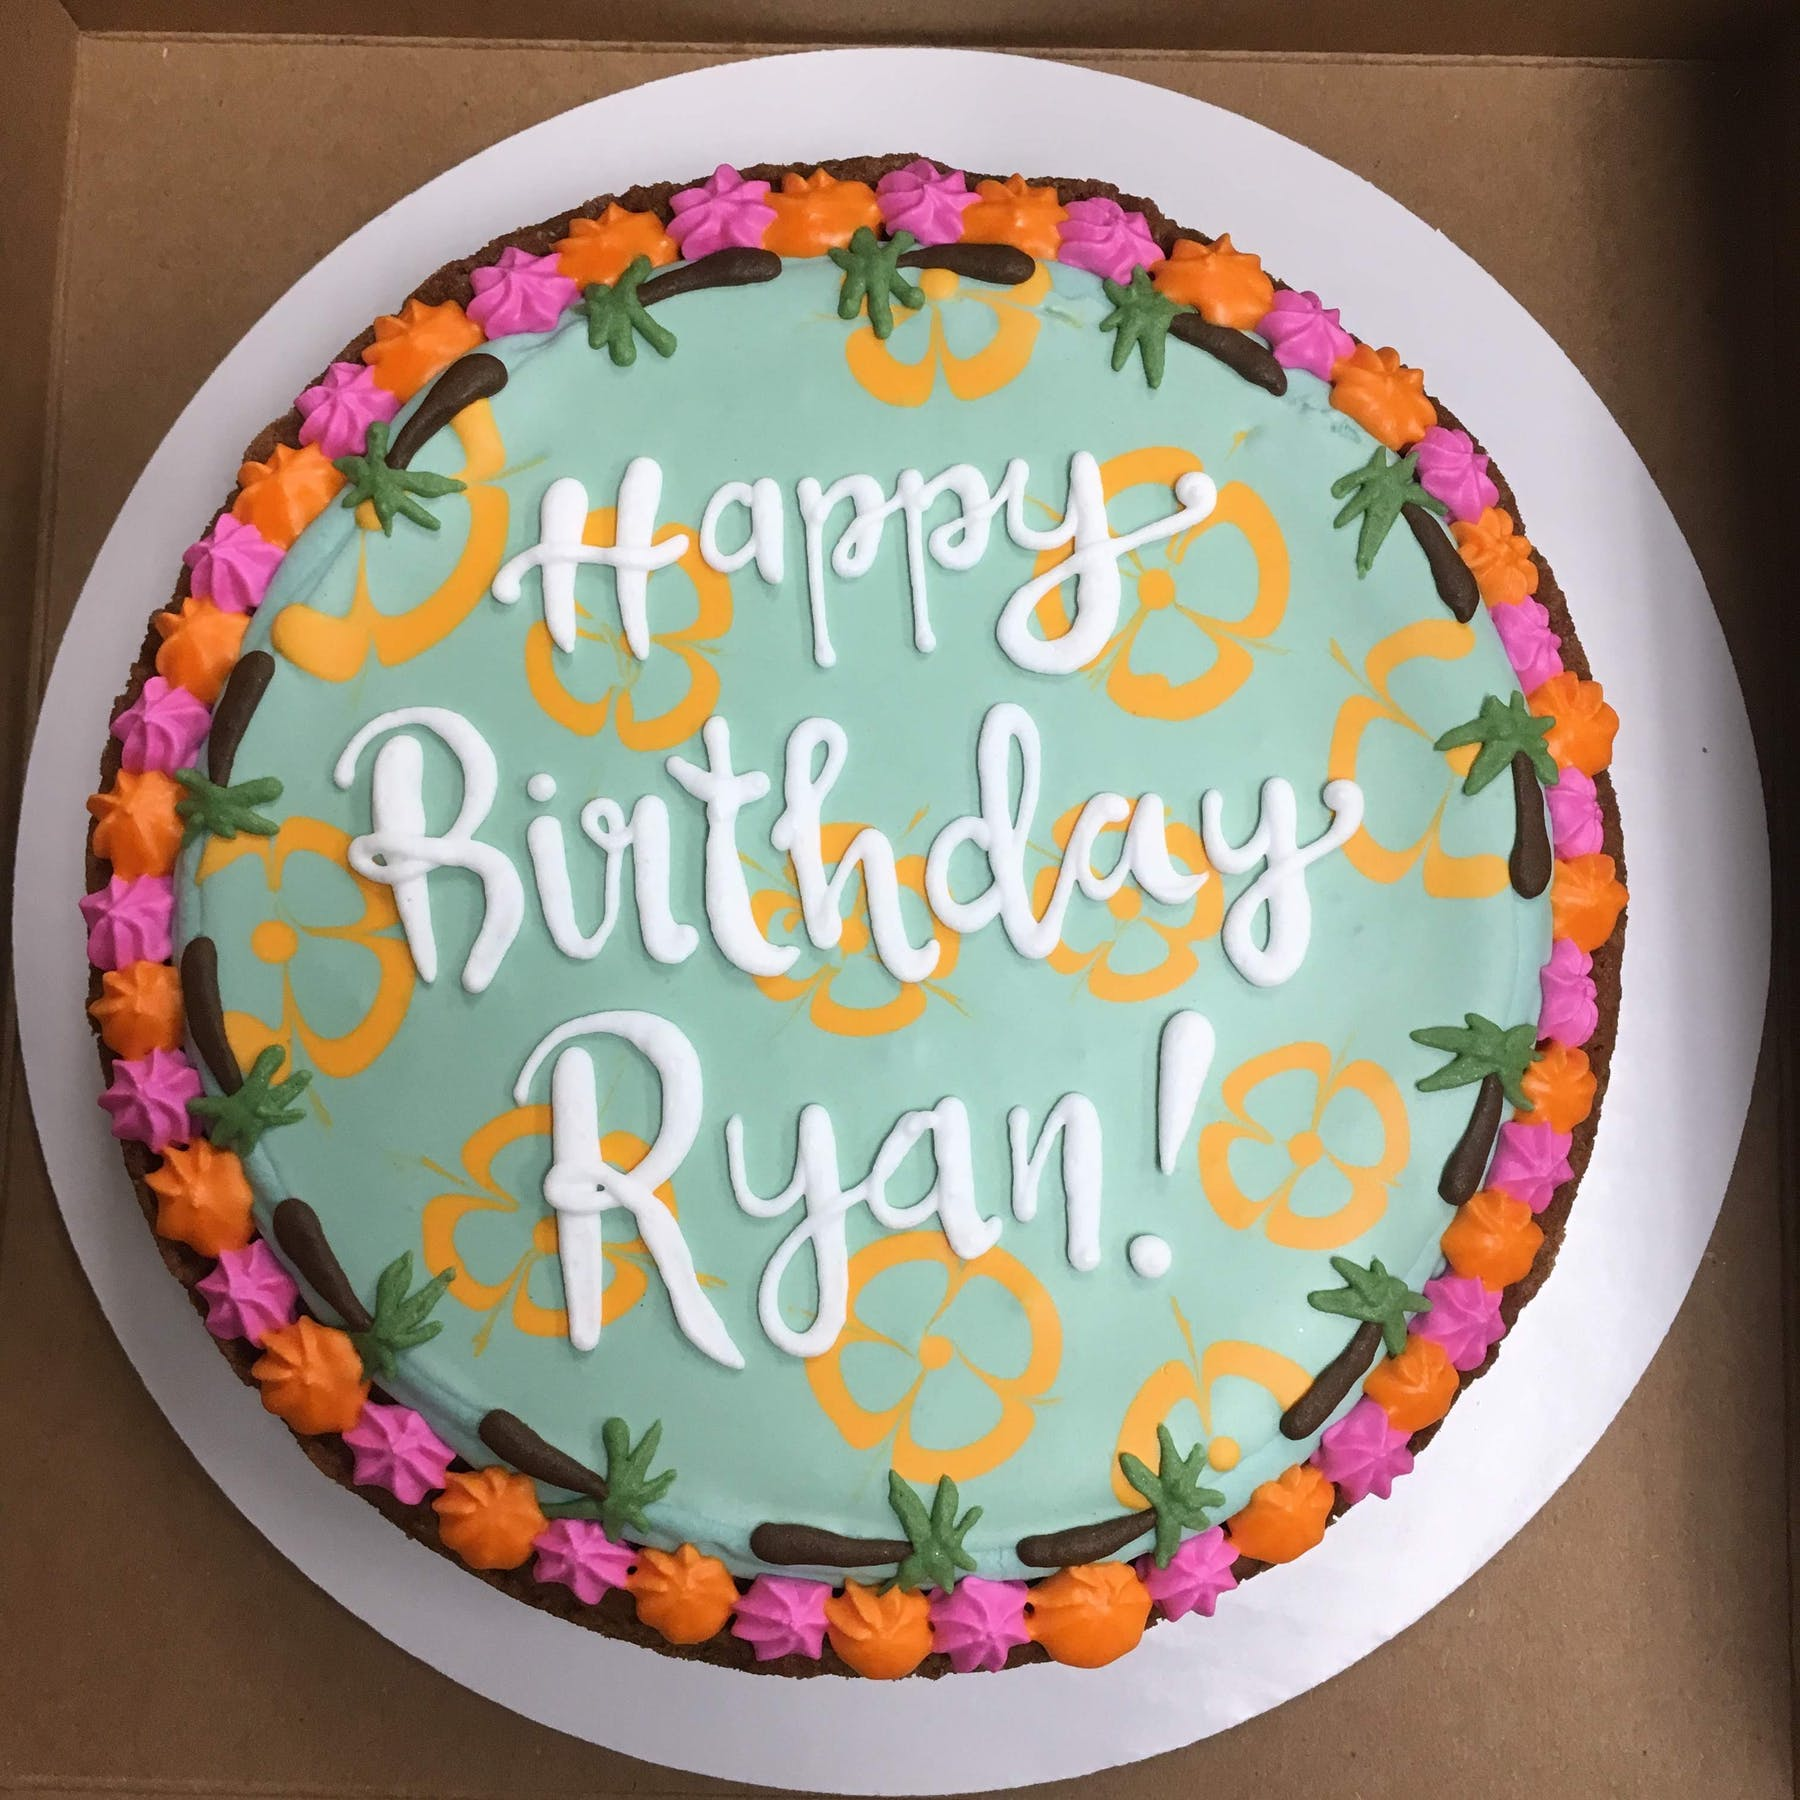 Magnificent Cookie Cakes Colleens Cookies Pastries And Cafe In St Funny Birthday Cards Online Sheoxdamsfinfo